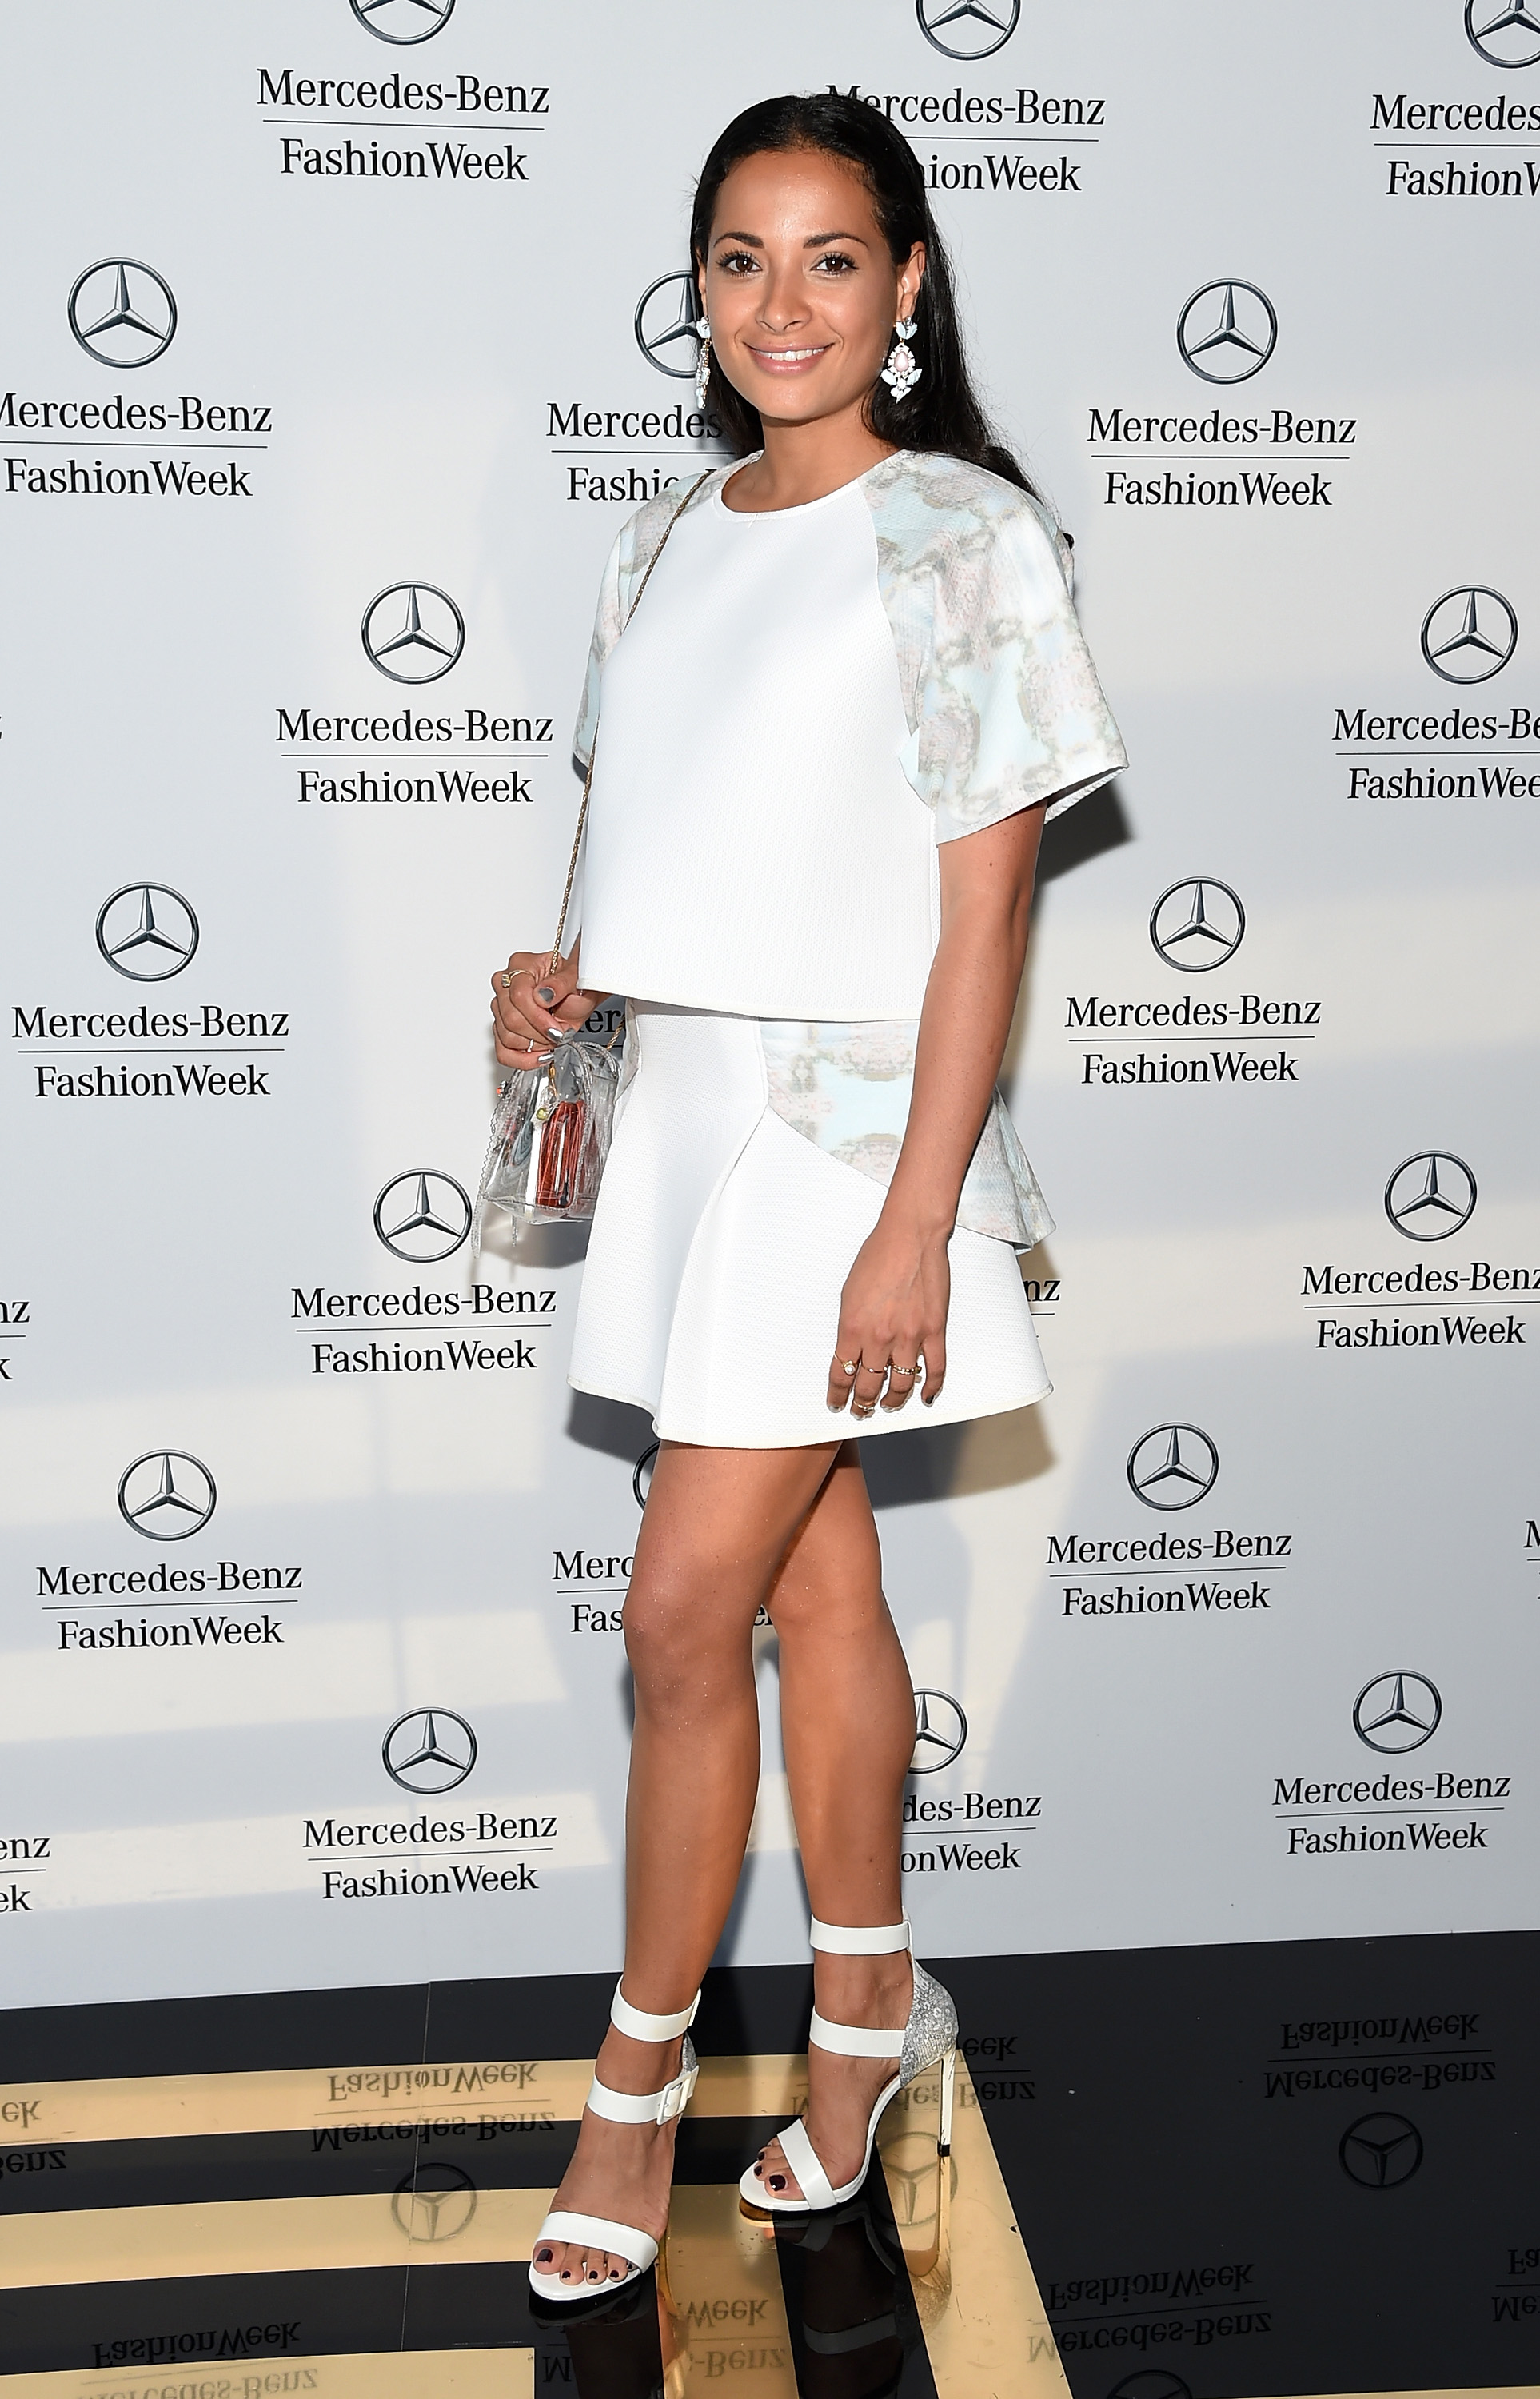 Mercedes-Benz Fashion Week Spring 2015 - Official Coverage - People And Atmosphere Day 2